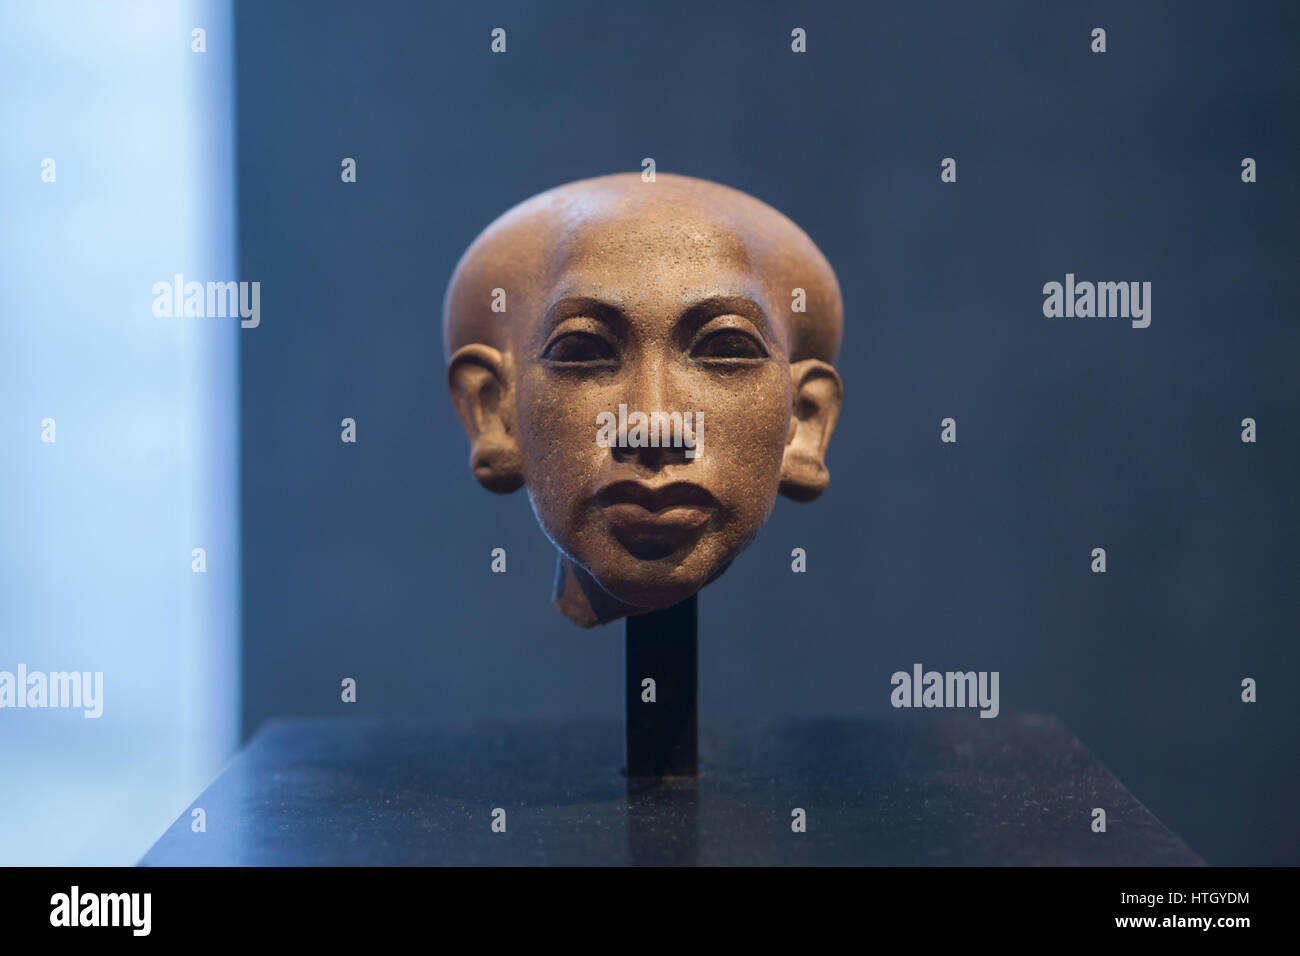 Egyptian princess. Quartzite head of a statue of one of the six daughters of Pharaoh Akhenaten and Queen Nefertiti - Stock Image